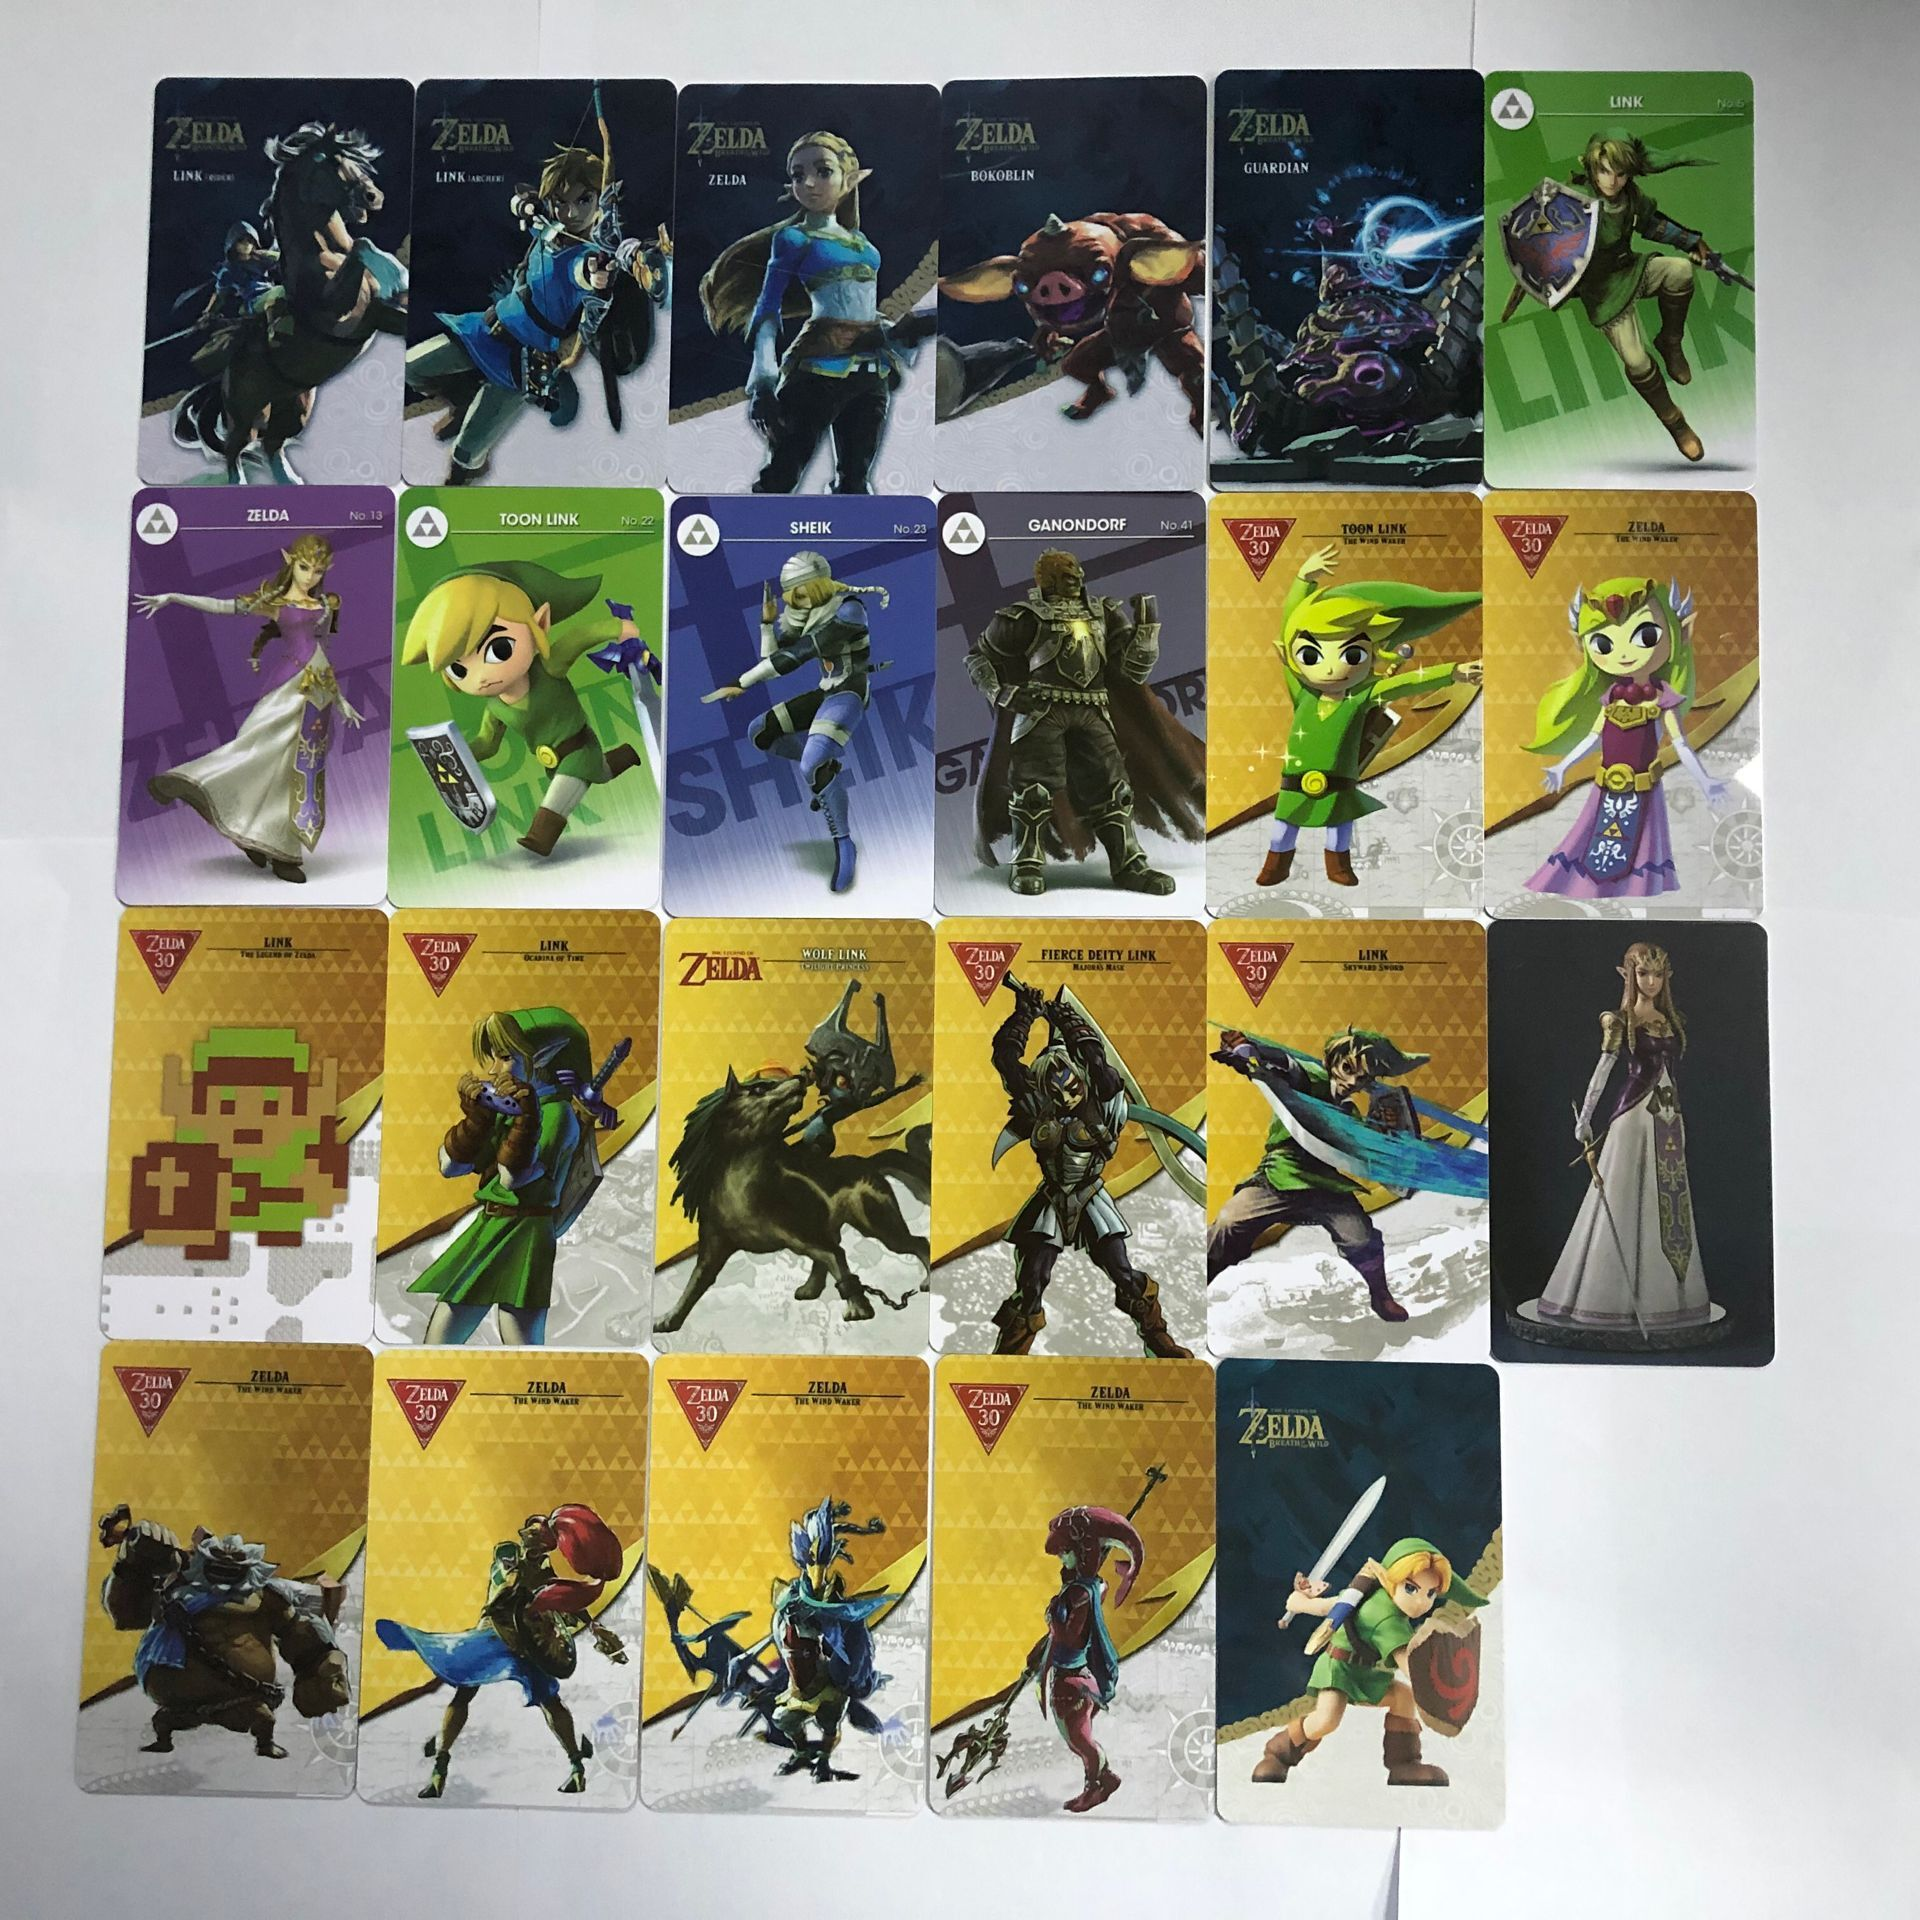 NFC Game Cards For NIntendo Switch For The Legend Of Zelda BotW Special Gift 23pcs/set